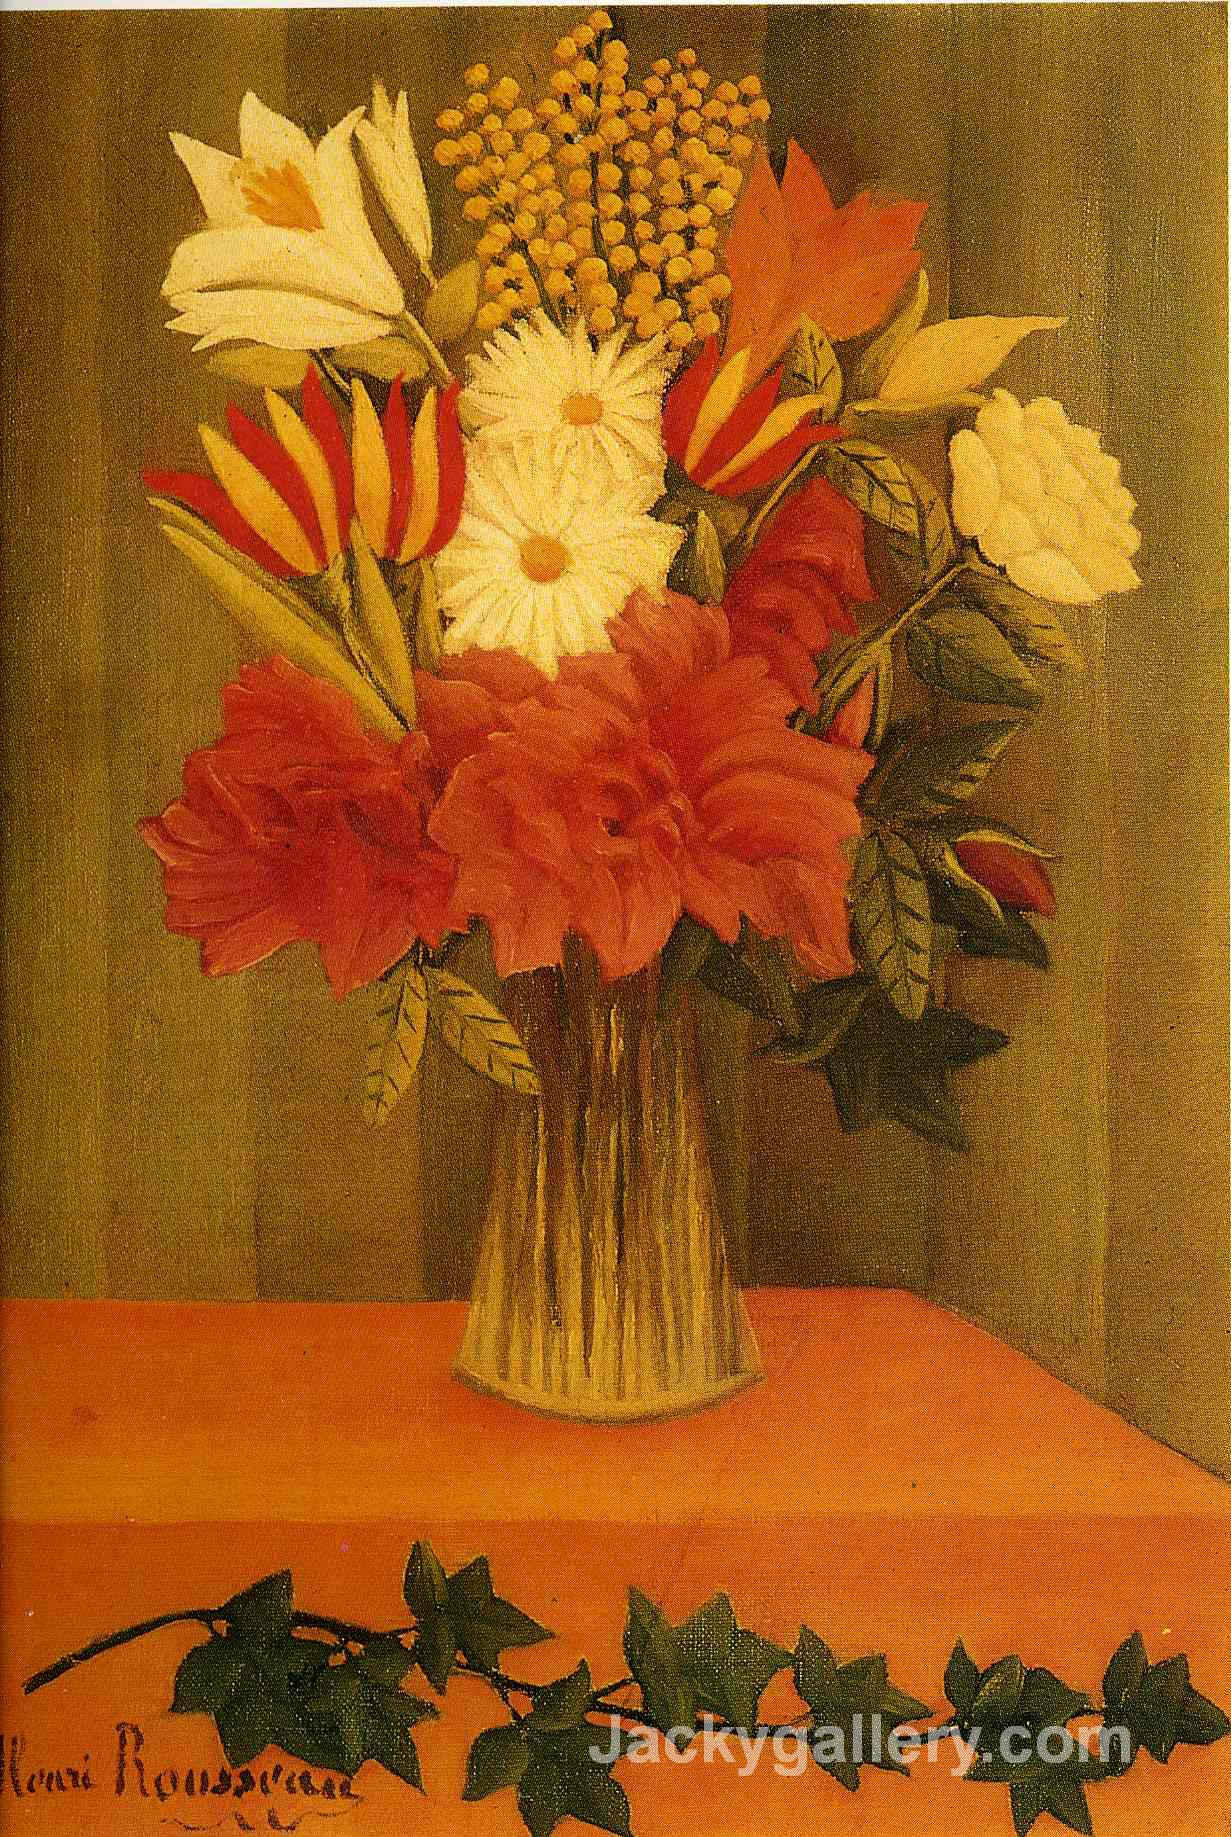 Vase of Flowers by Henri Rousseau paintings reproduction